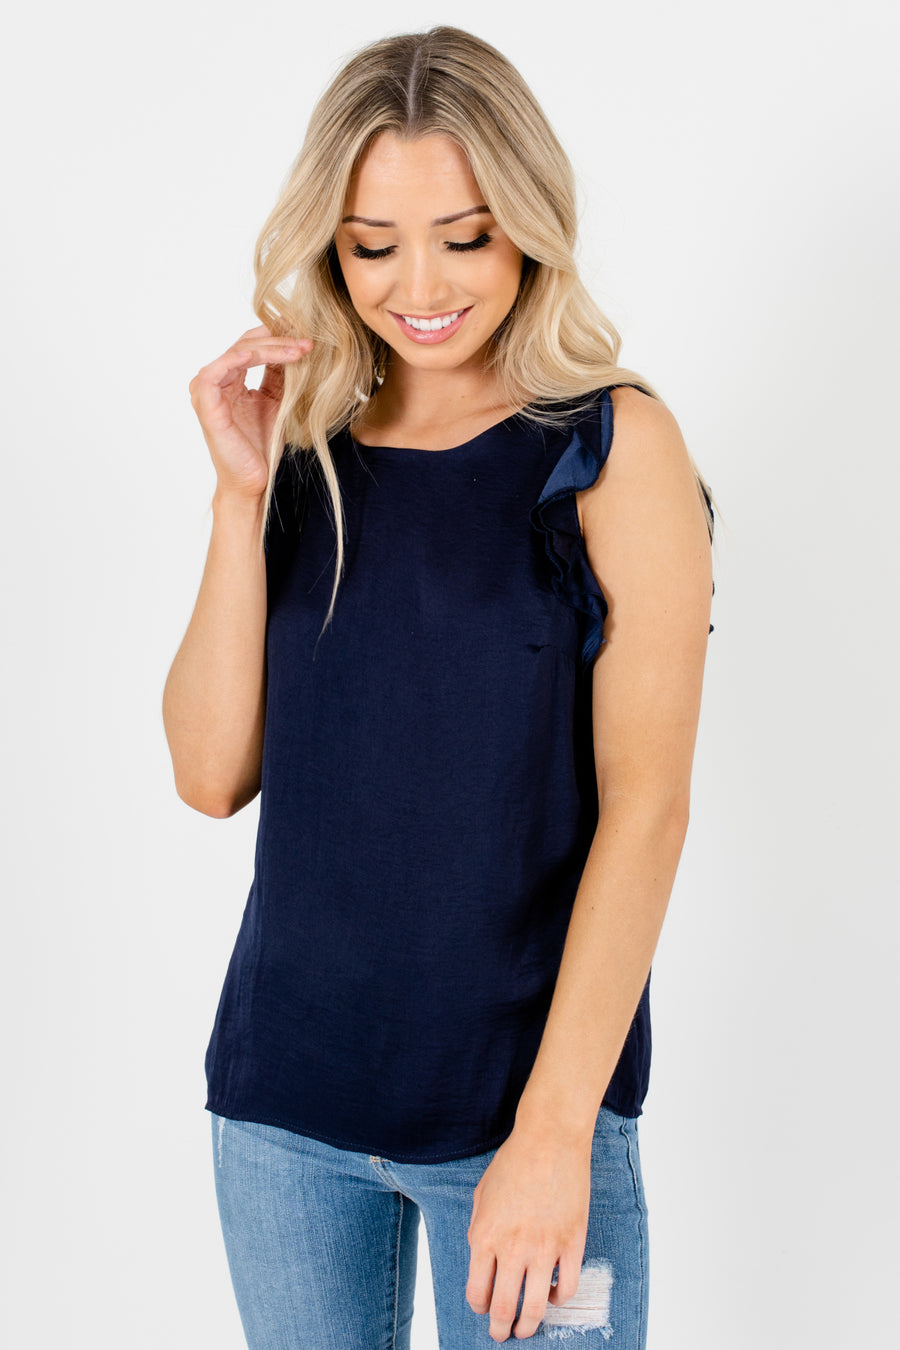 Women's Clothing Under $10 | Affordable Online Boutique Clothing